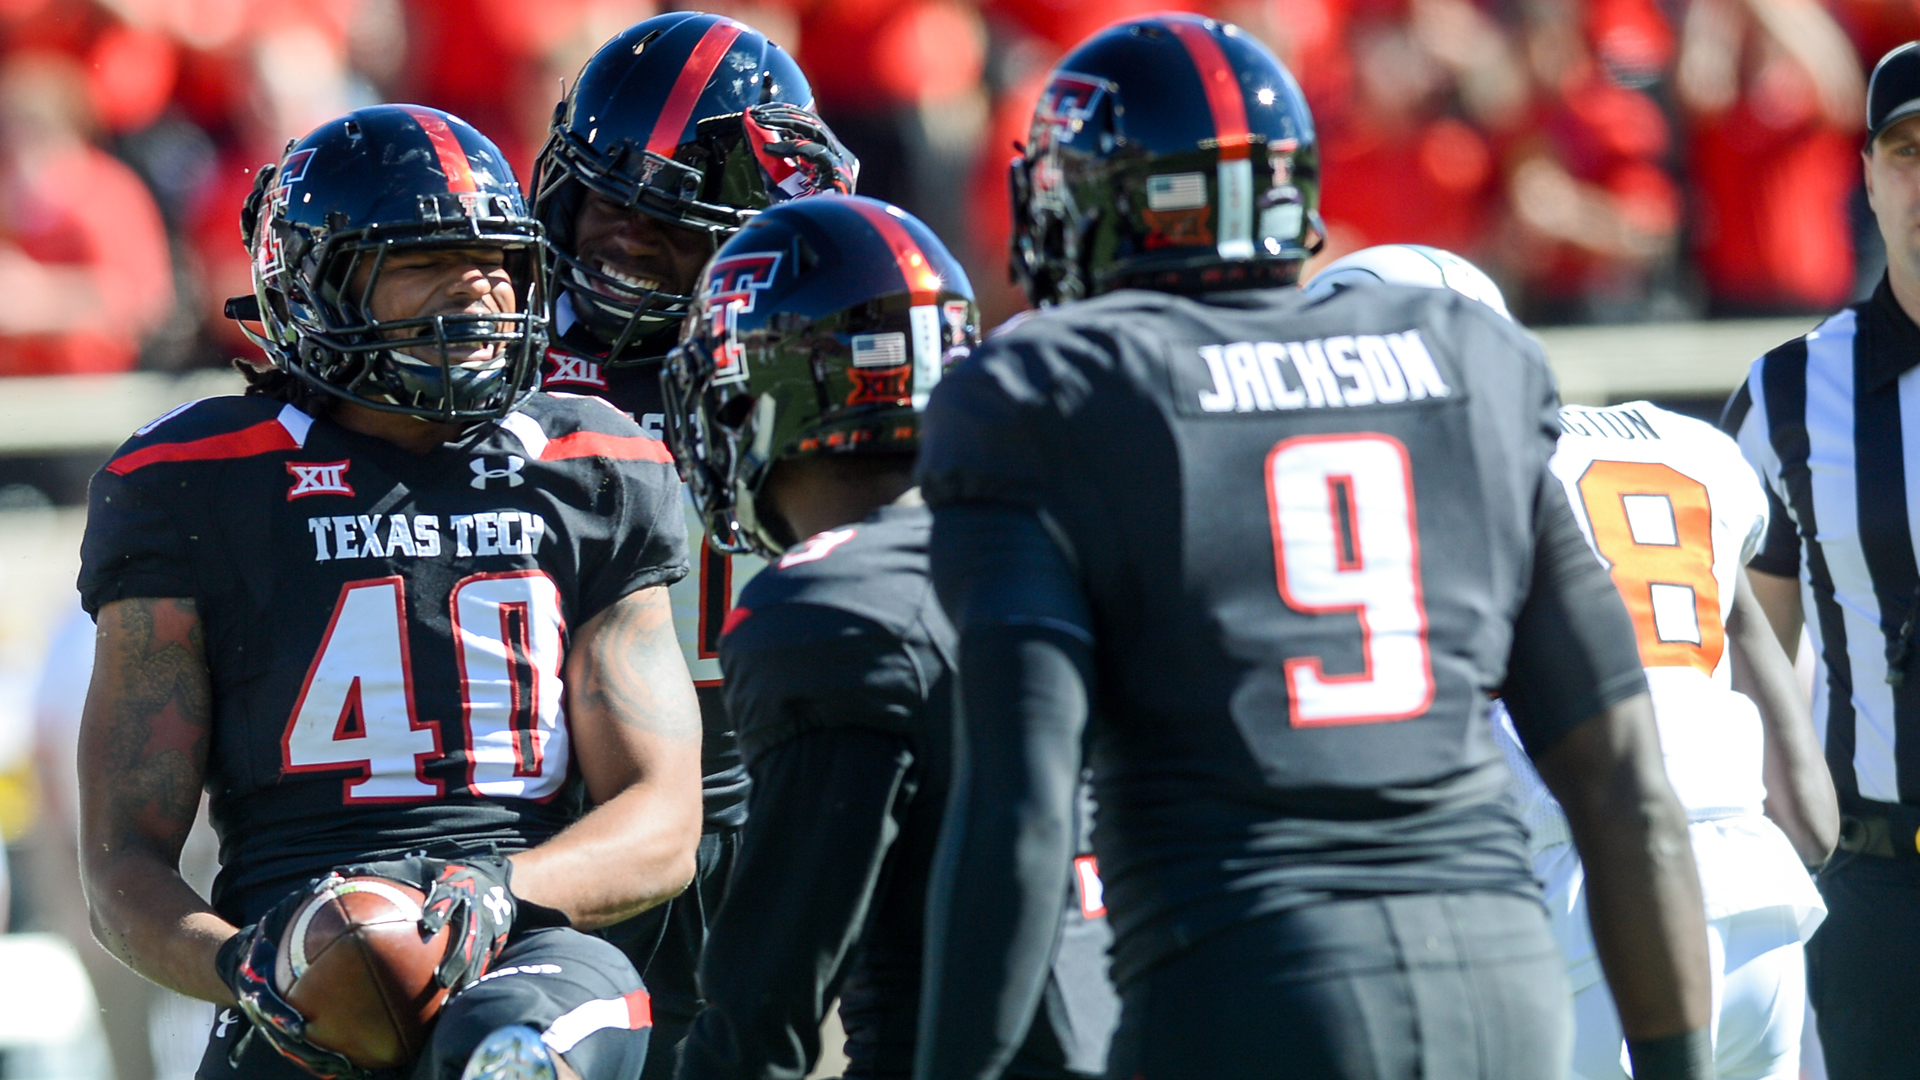 South Florida's Strong facing familiar foe in Texas Tech